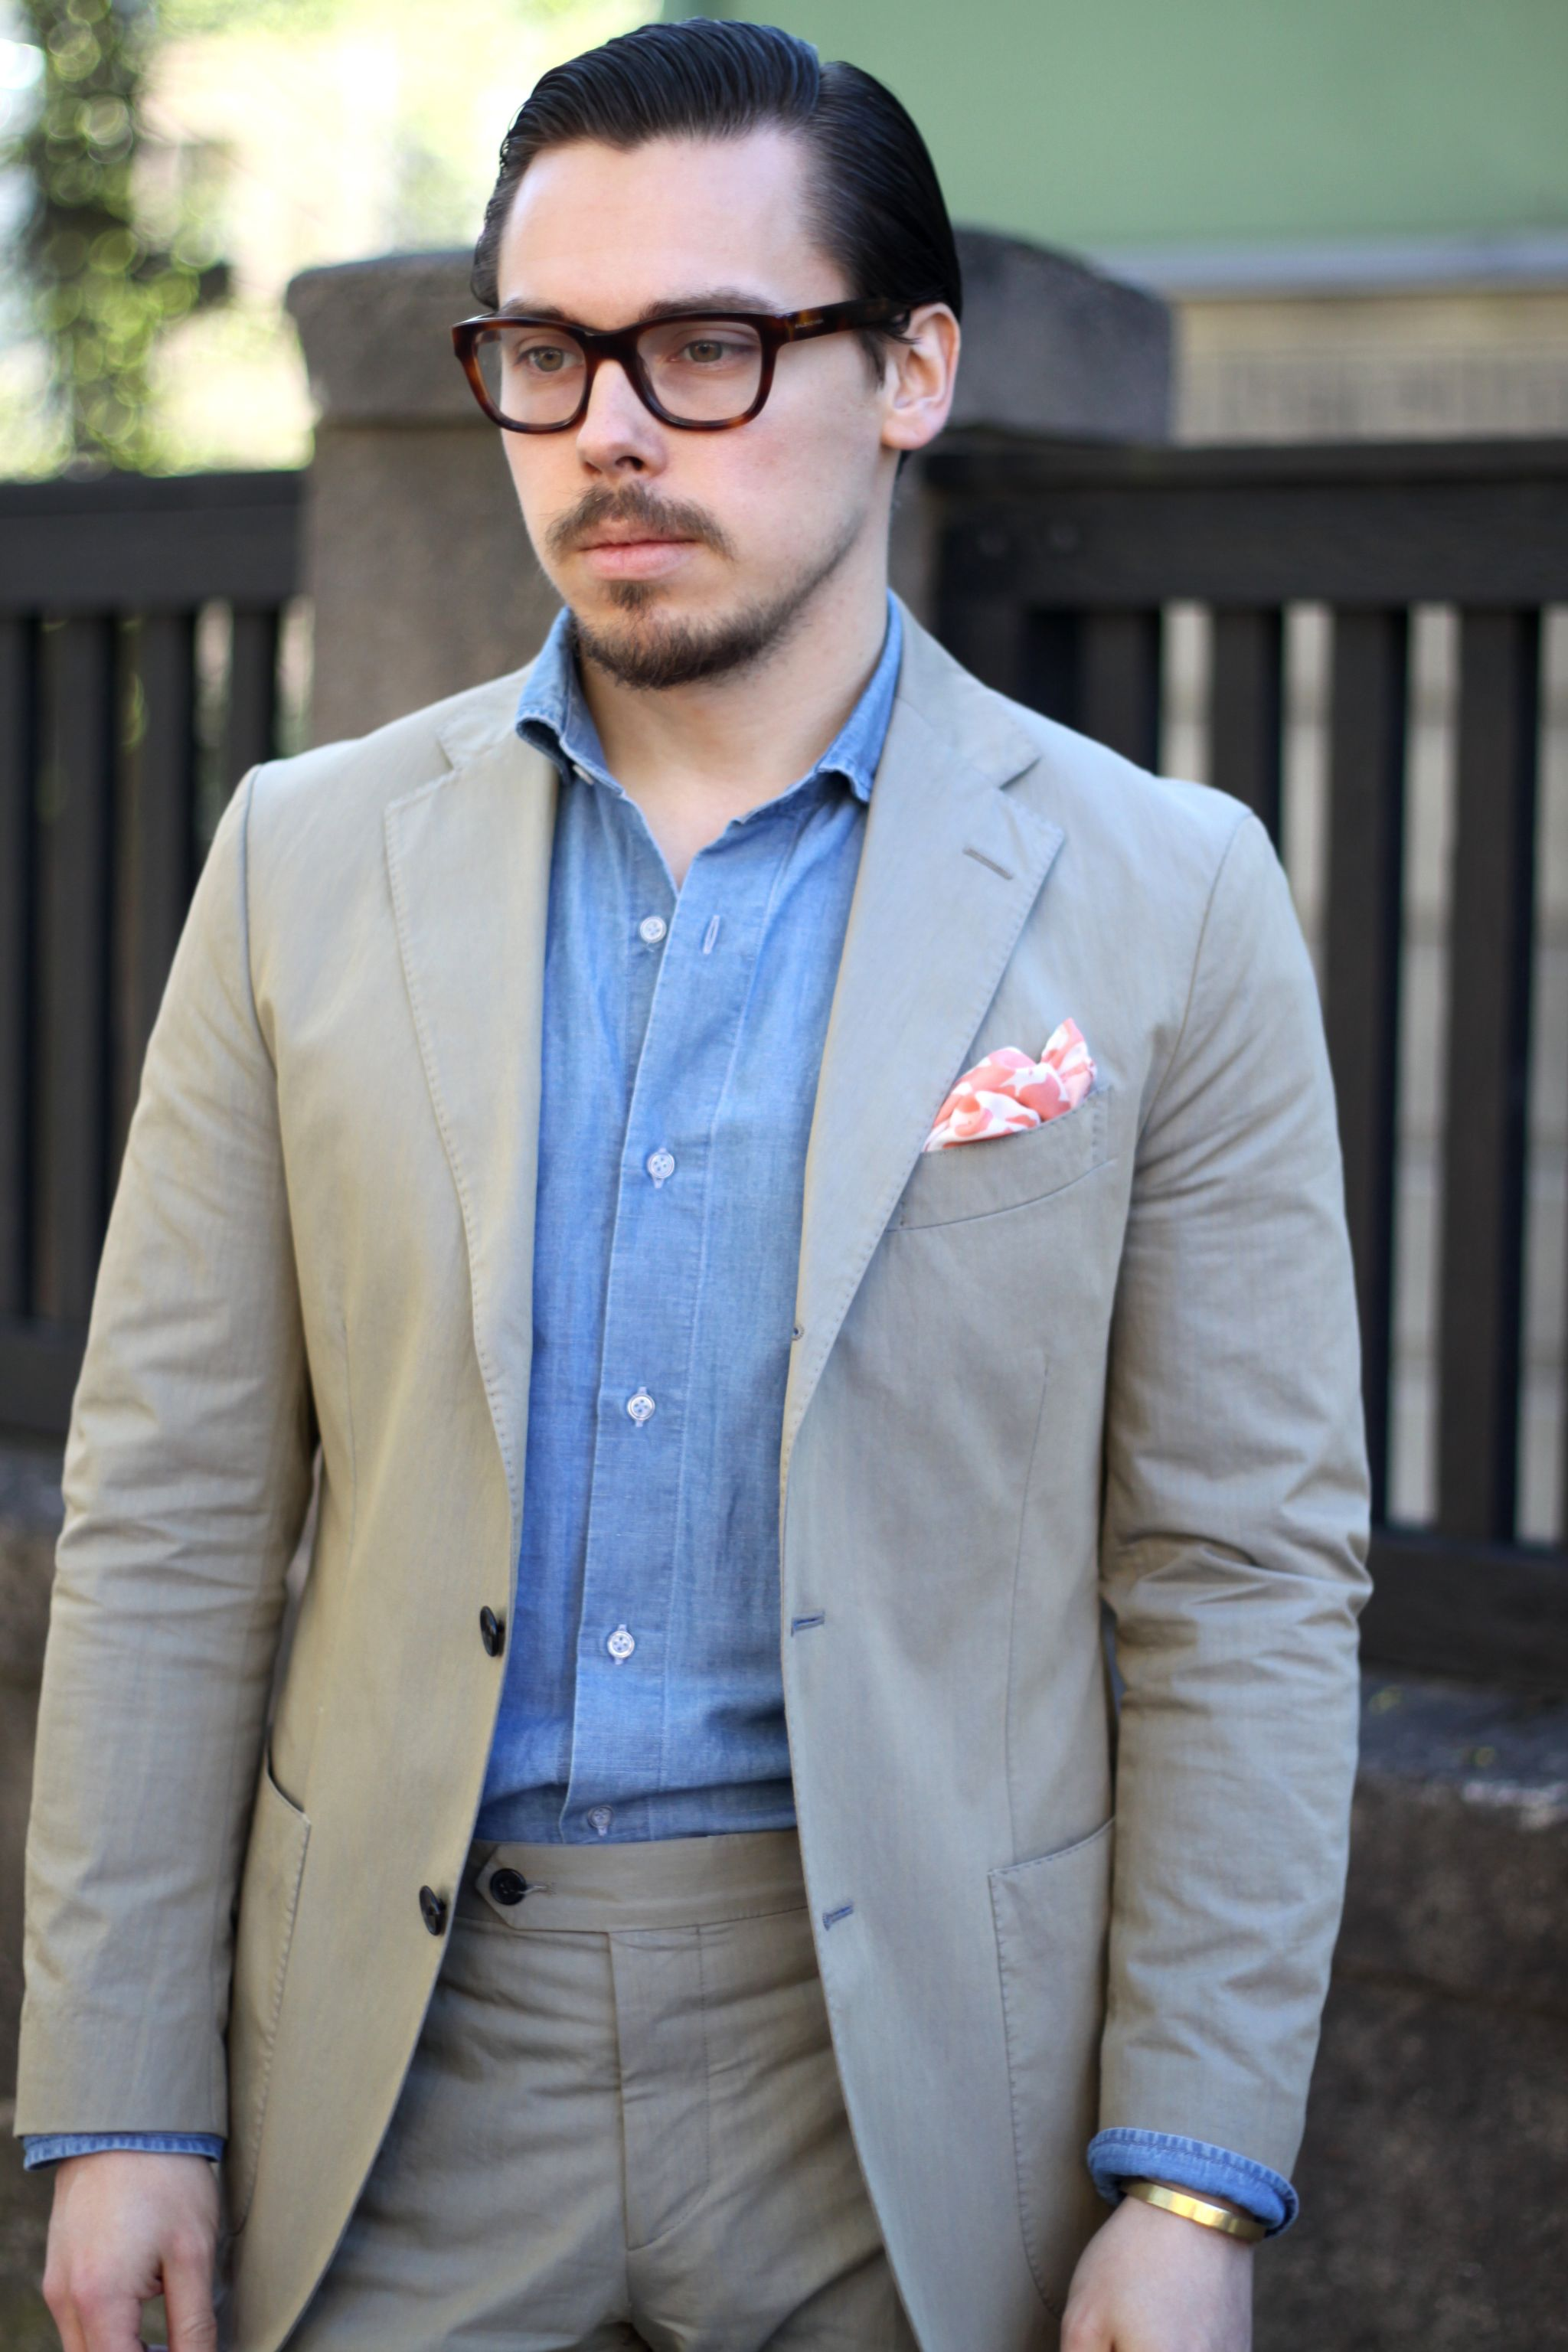 Casual suit without tie - green cotton suit and denim shirt is a perfect combination for summer